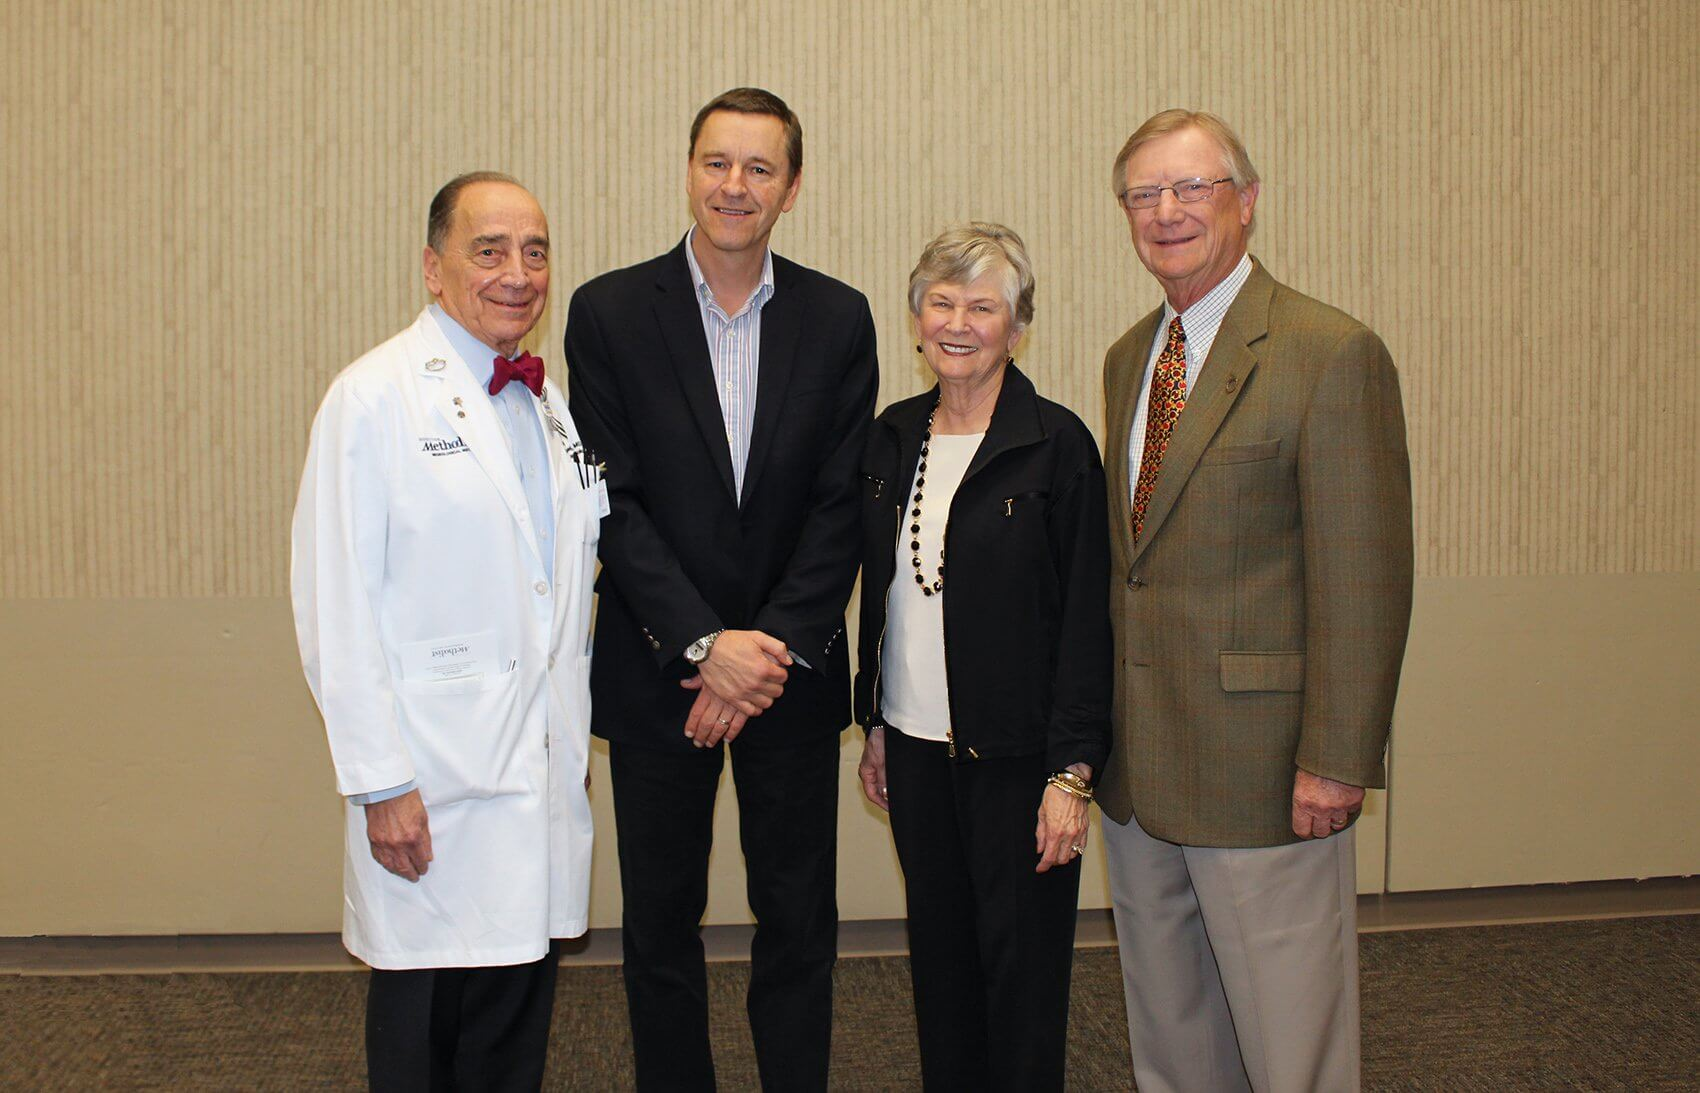 From left: Stanley Appel, M.D., Clive Svendsen, Ph.D., and Peggy and Gary Edwards.